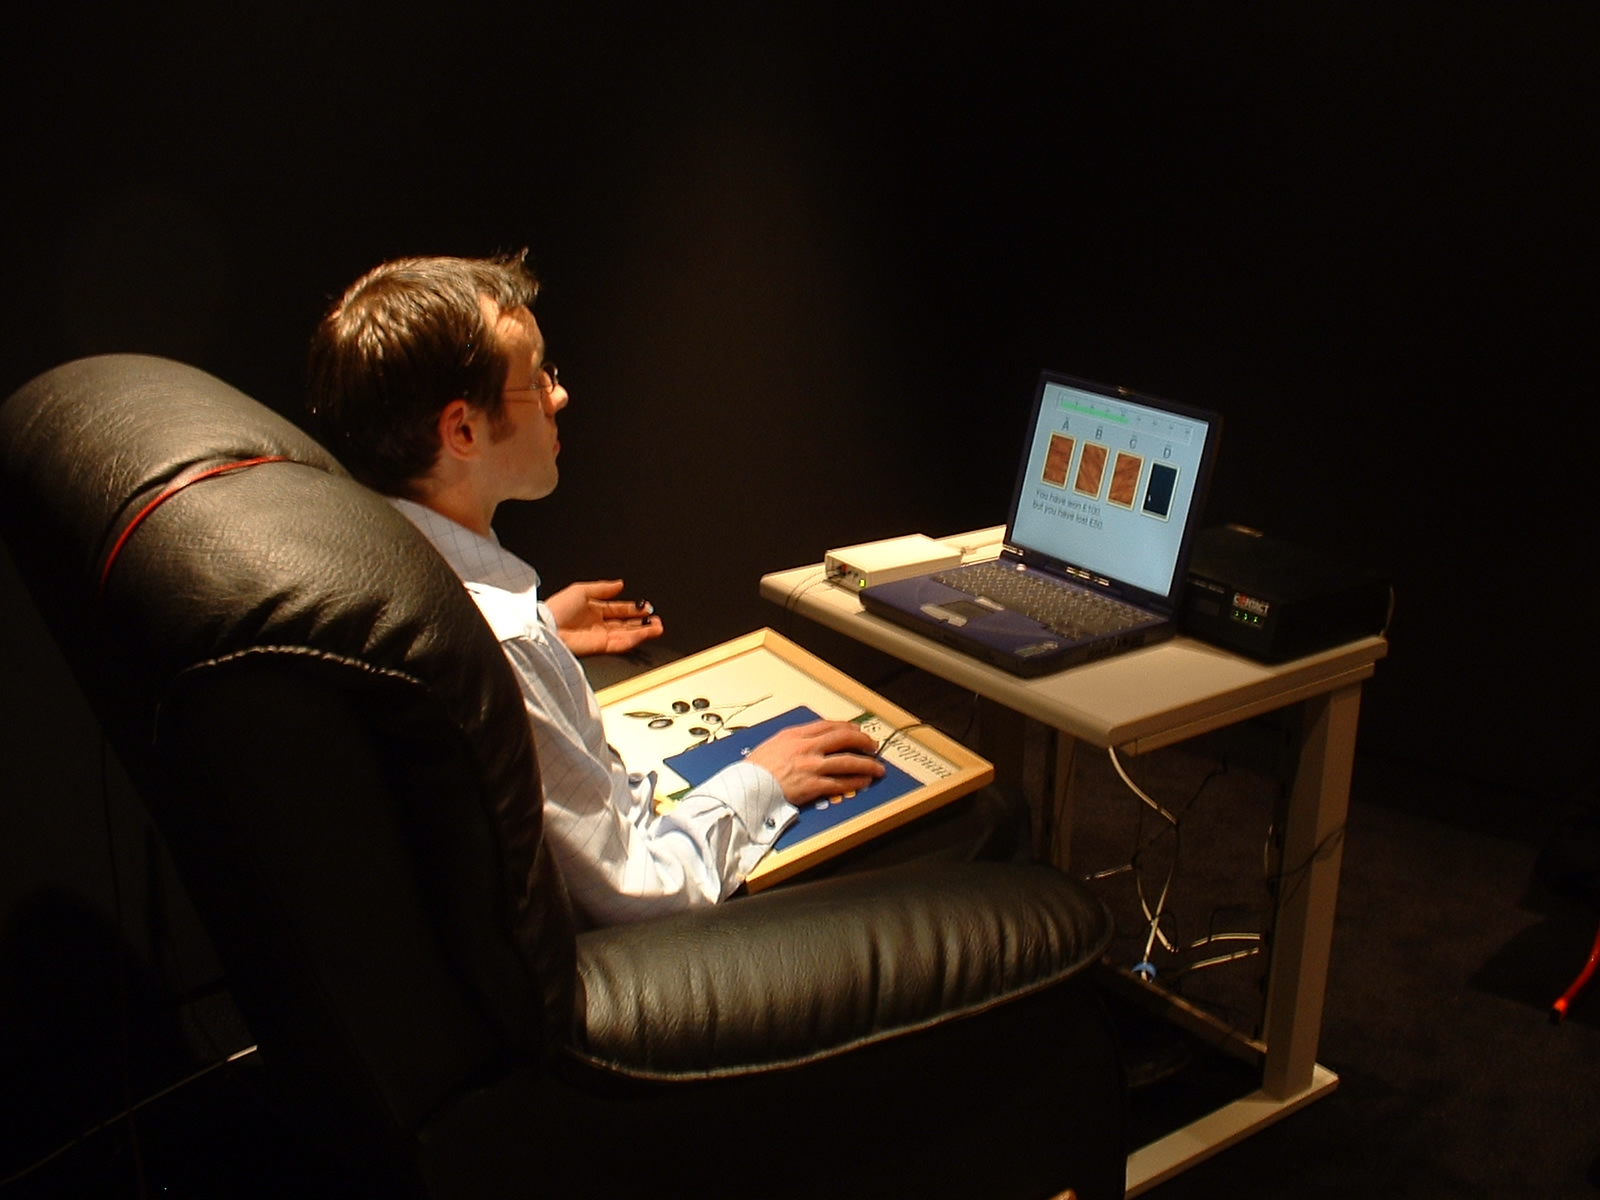 Participant in a study investigating emotional responsiveness and anomalous intuition at the University of Northampton